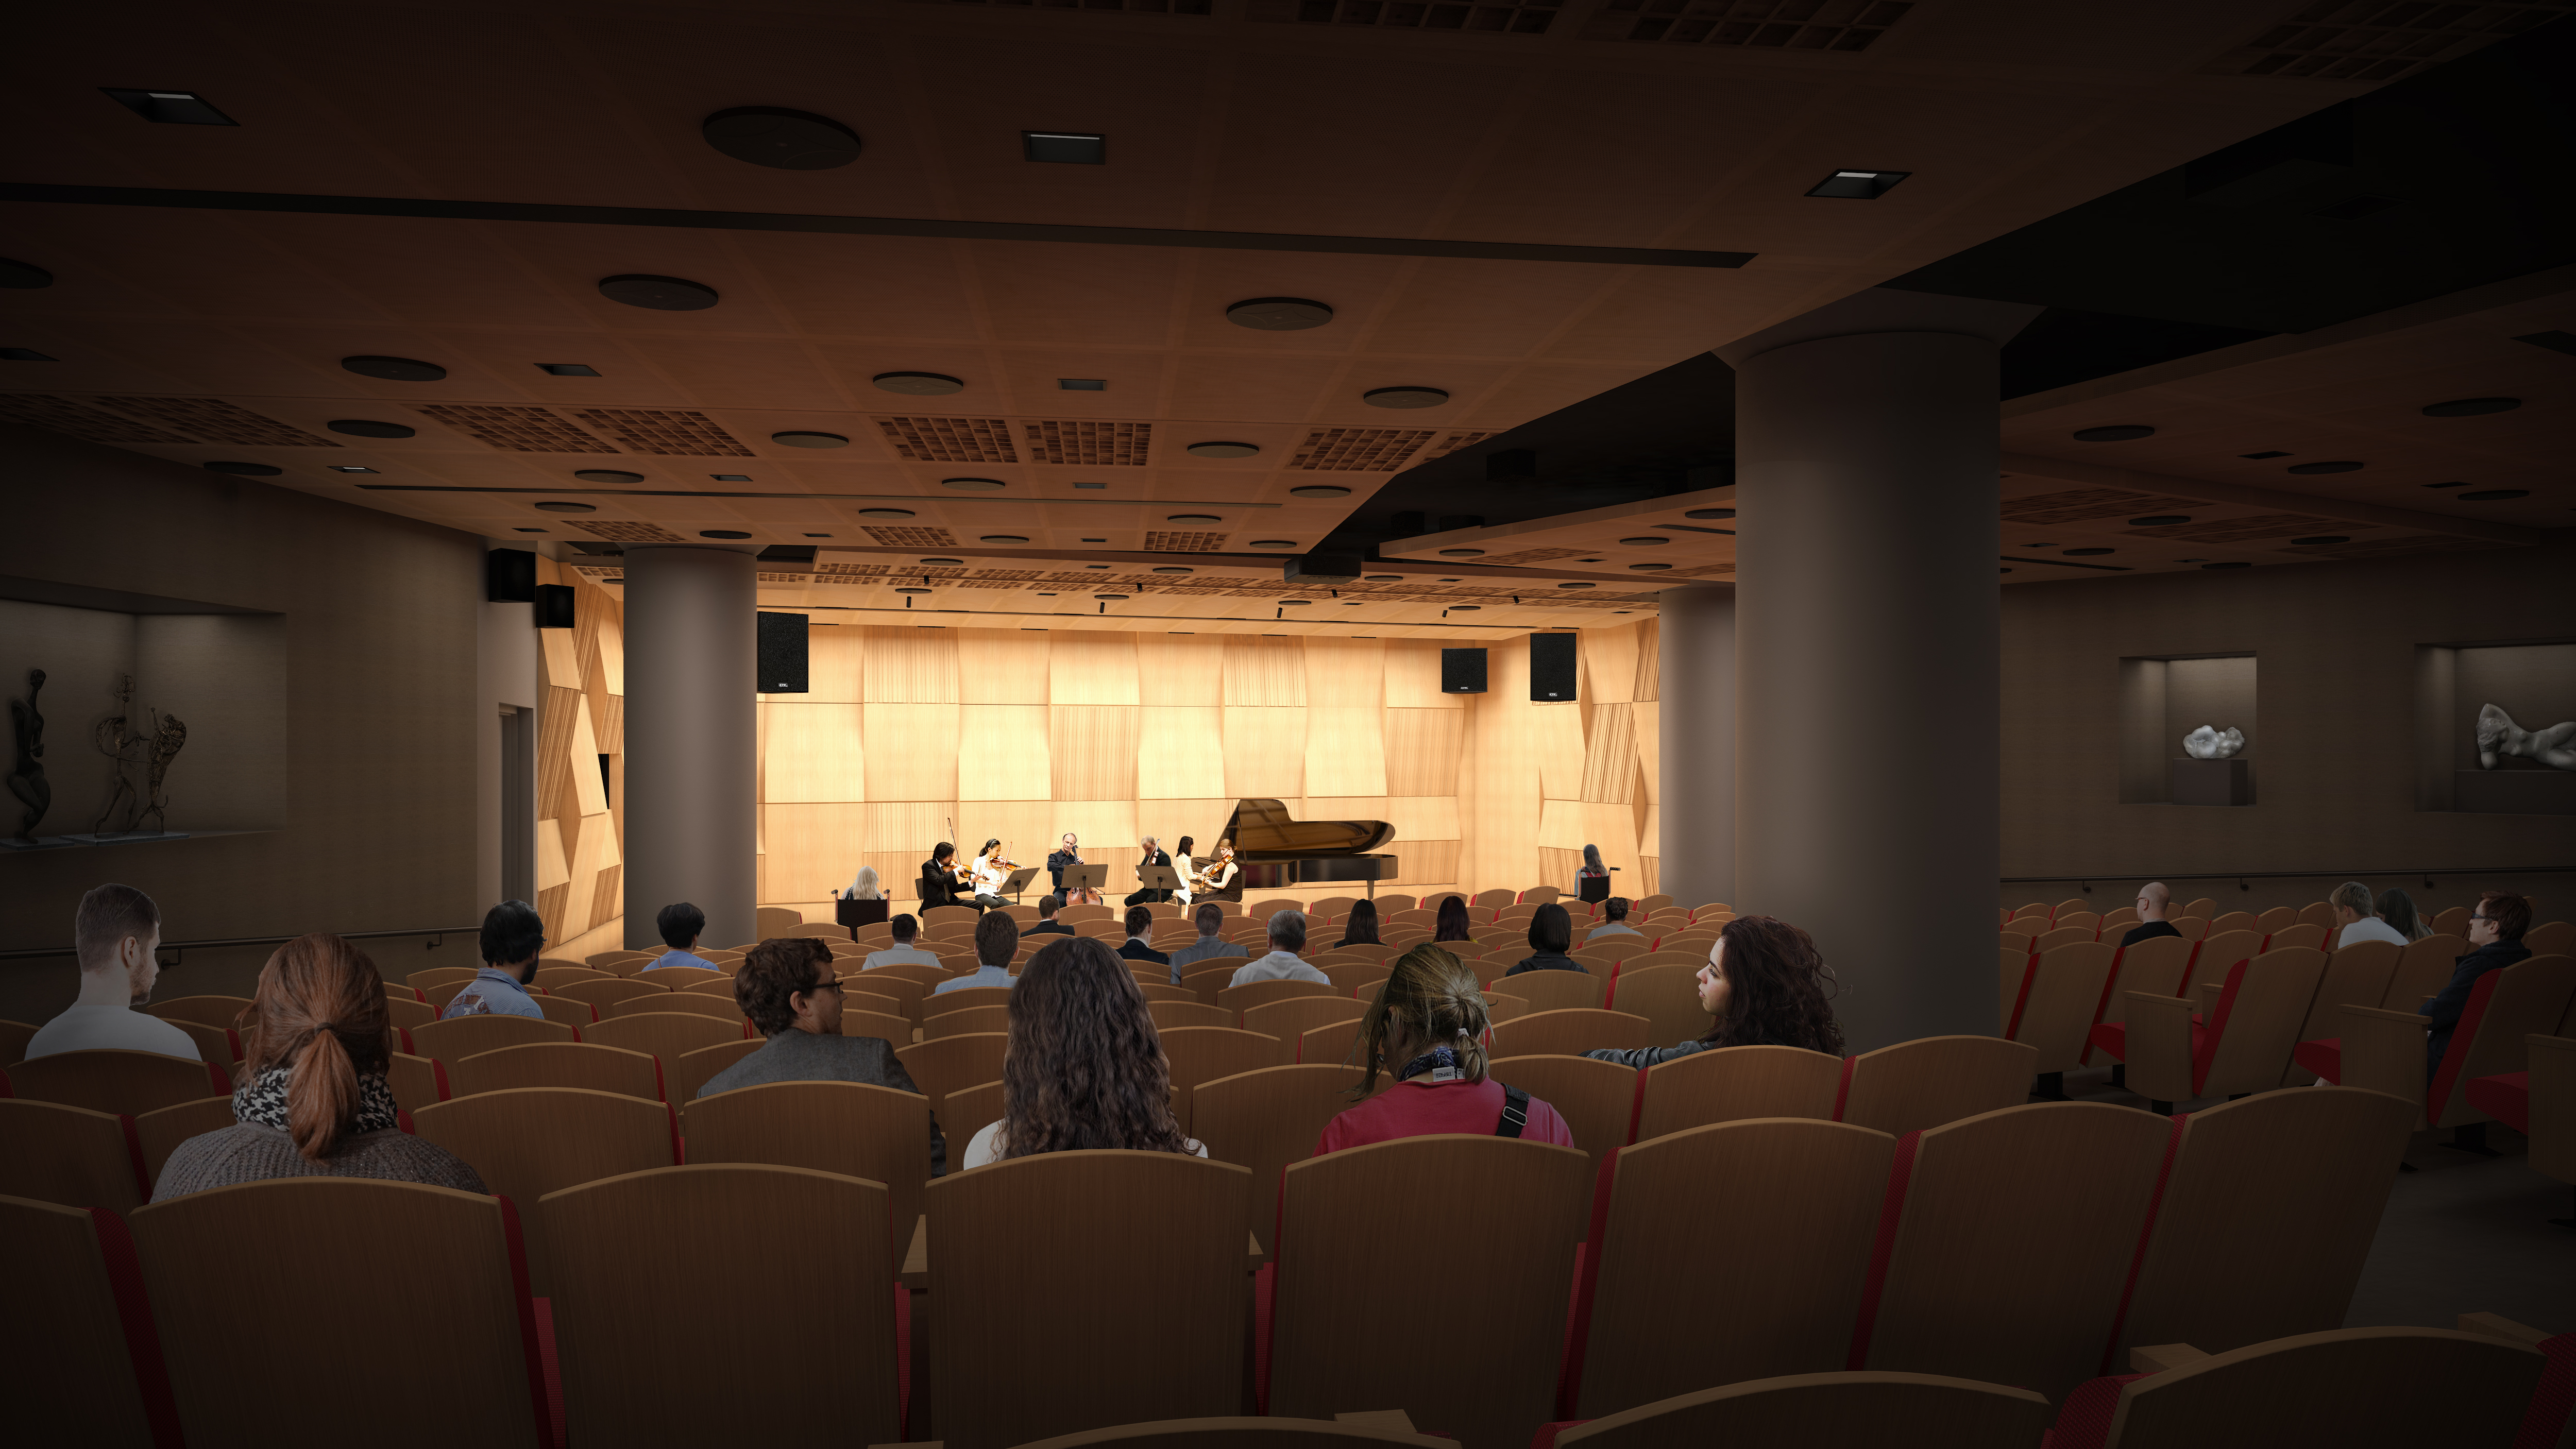 Architect´s rendering of the concert hall planned for the basement of the Pennsylvania Academy of the Arts´ Hamilton building on North Broad Street.